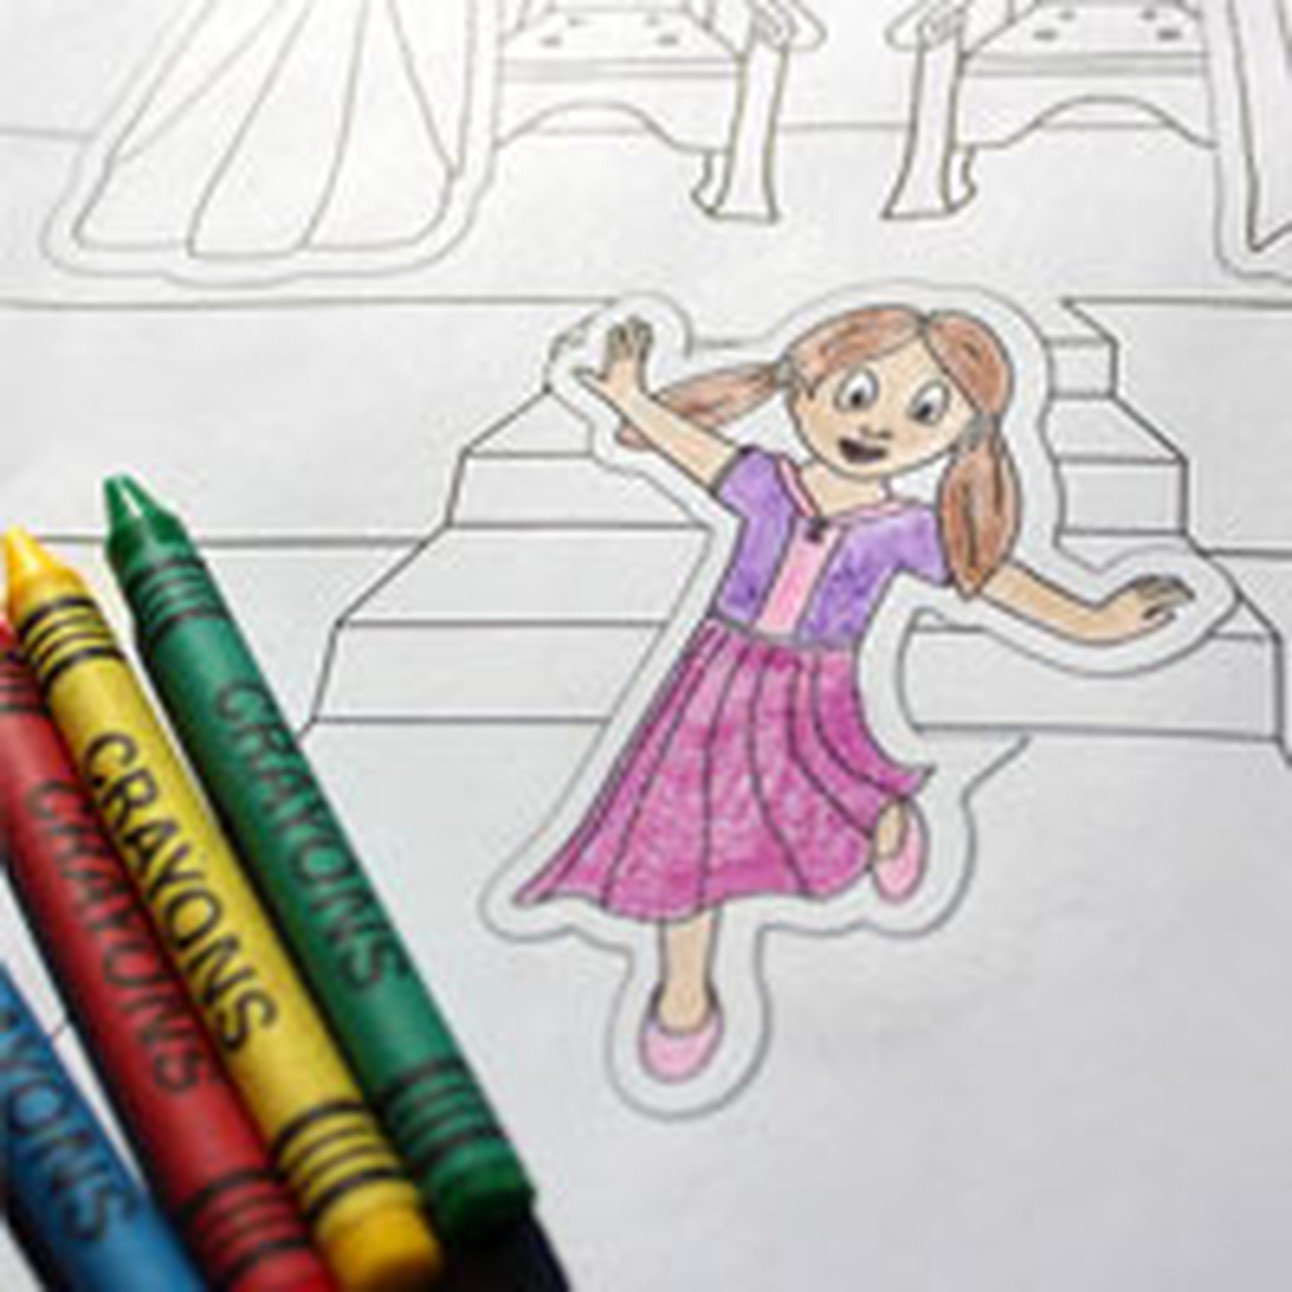 create your own princess tale